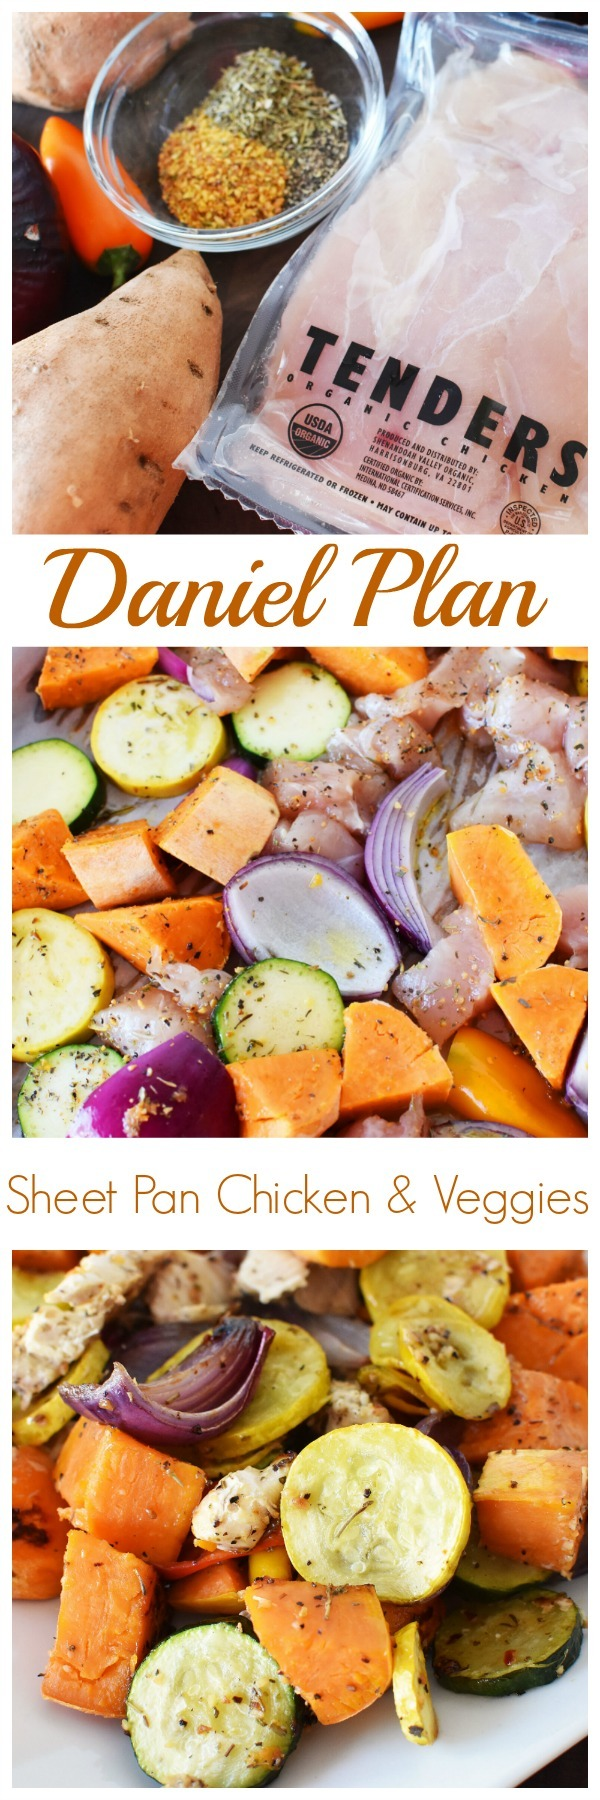 Daniel Plan Sheet Pan Chicken and Veggies